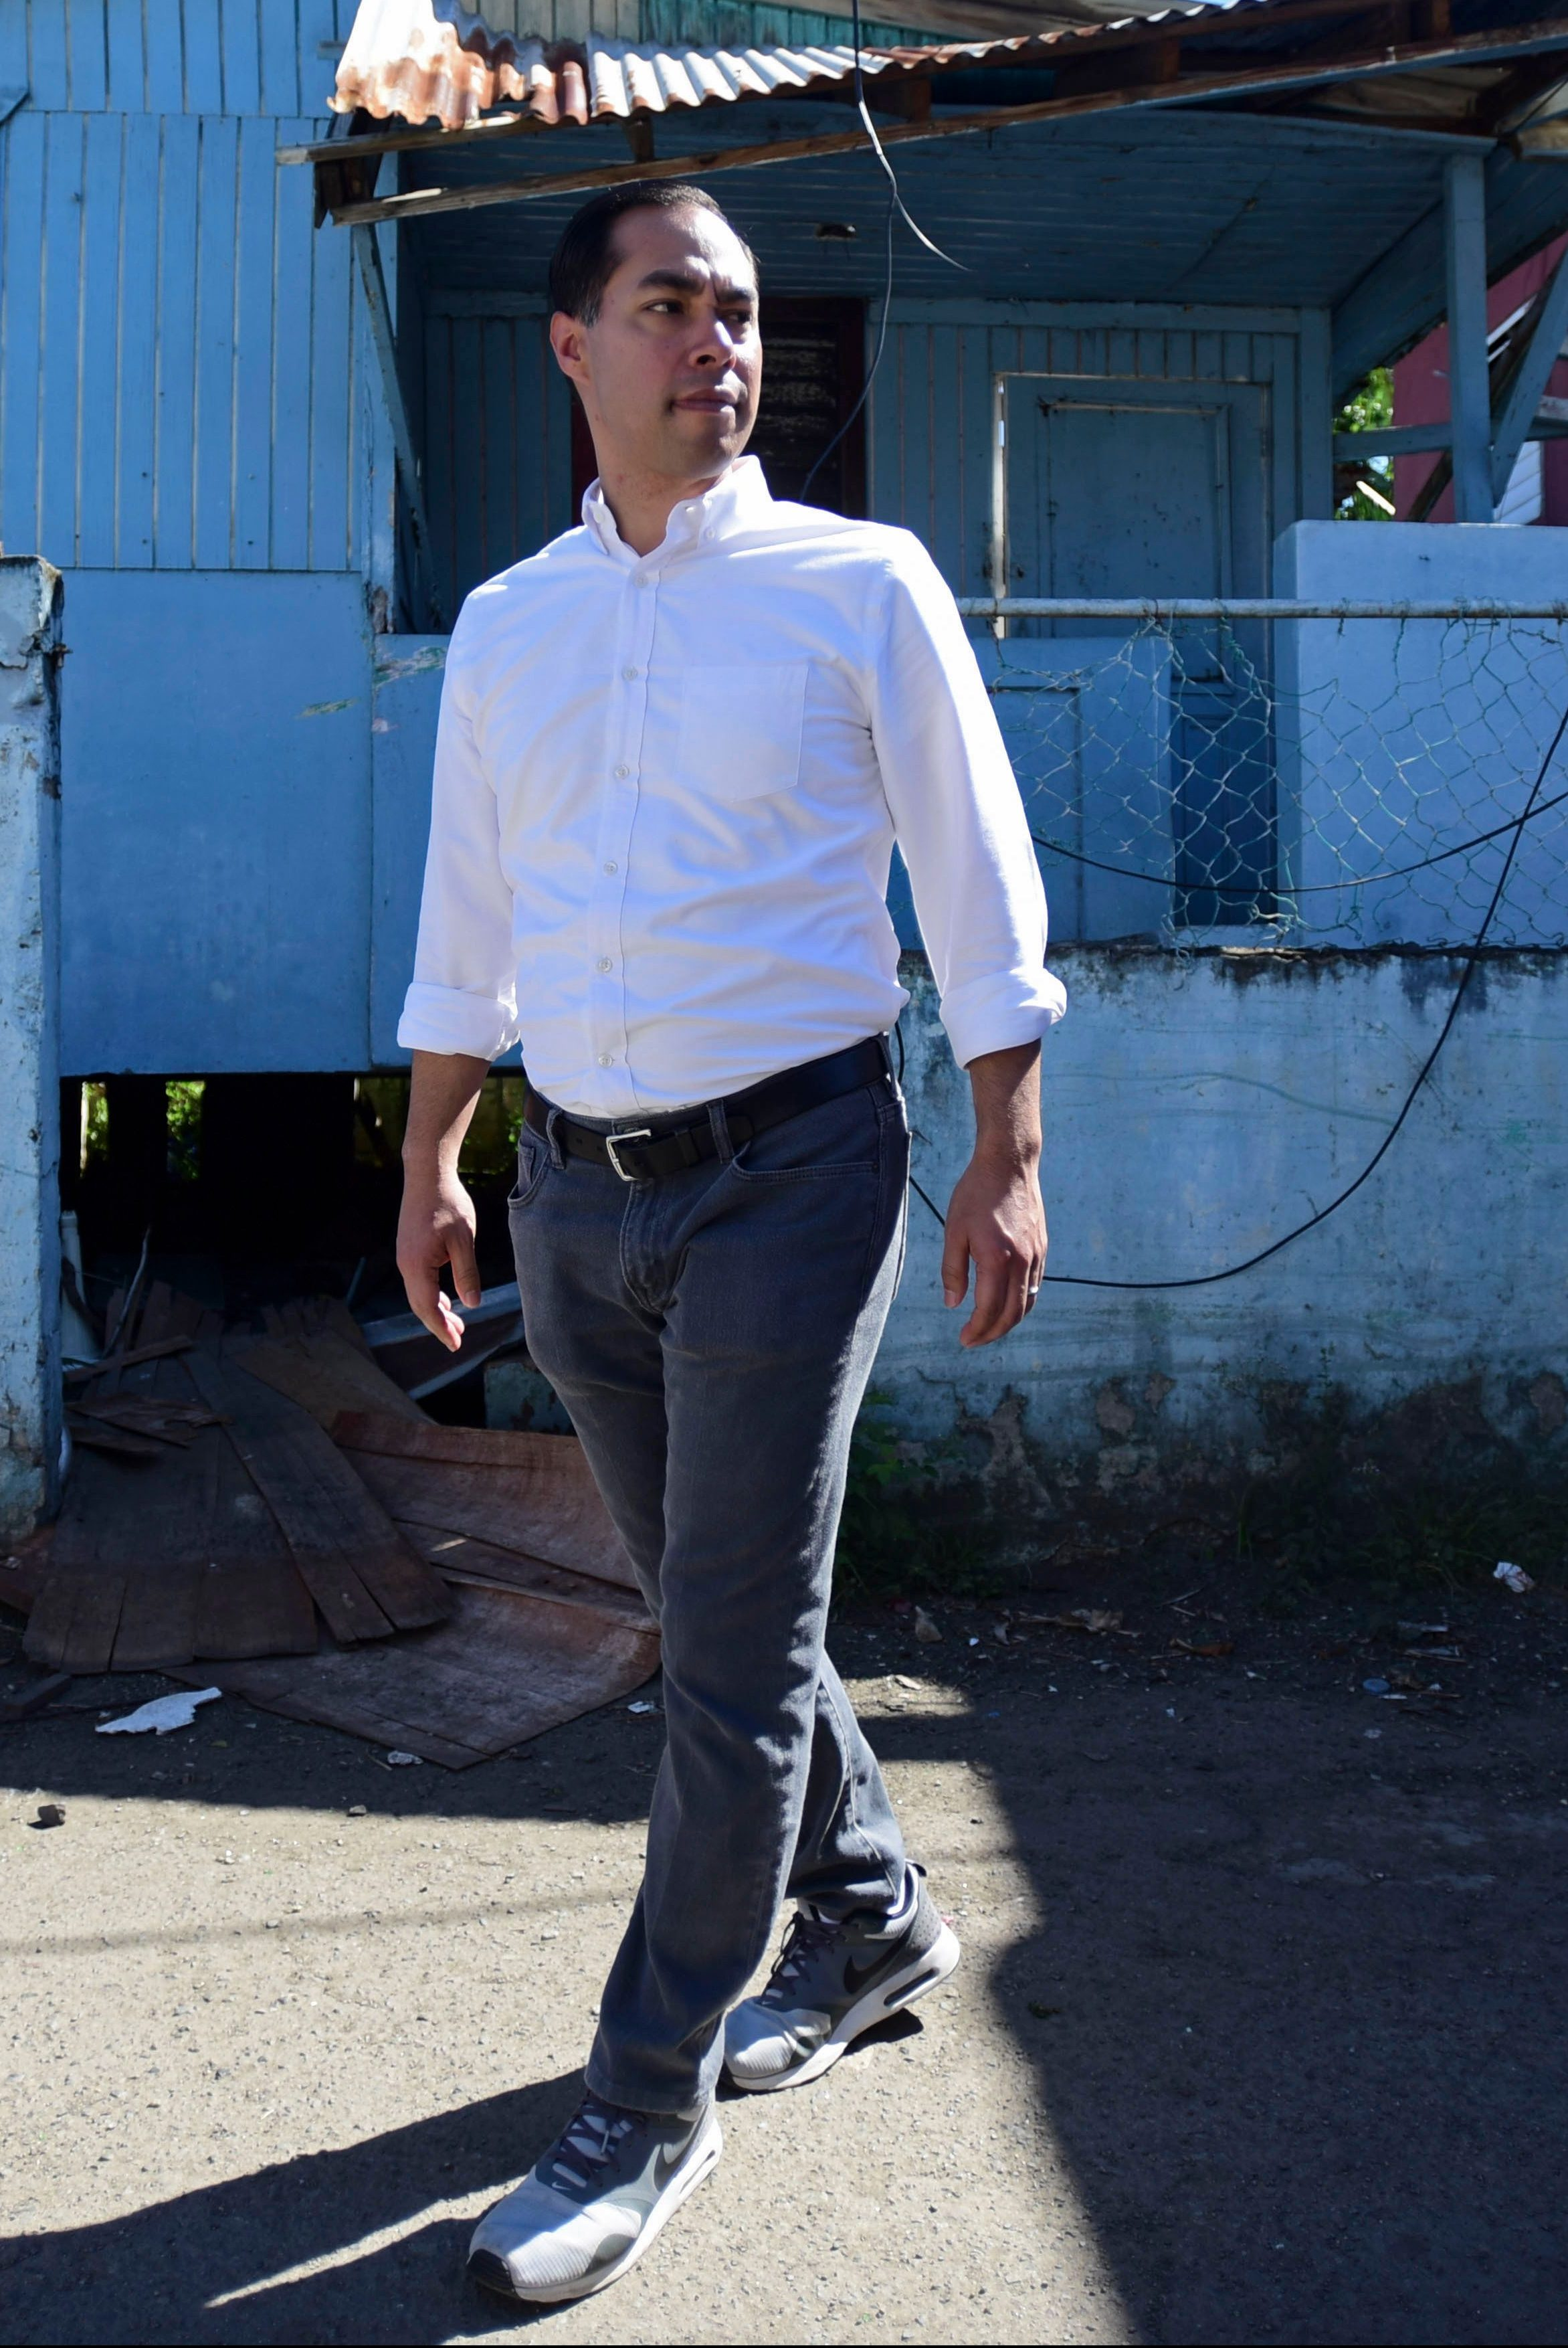 Julian Castro visits Playita, one of the poorest and most affected communities by Hurricane Maria in San Juan, Puerto Rico